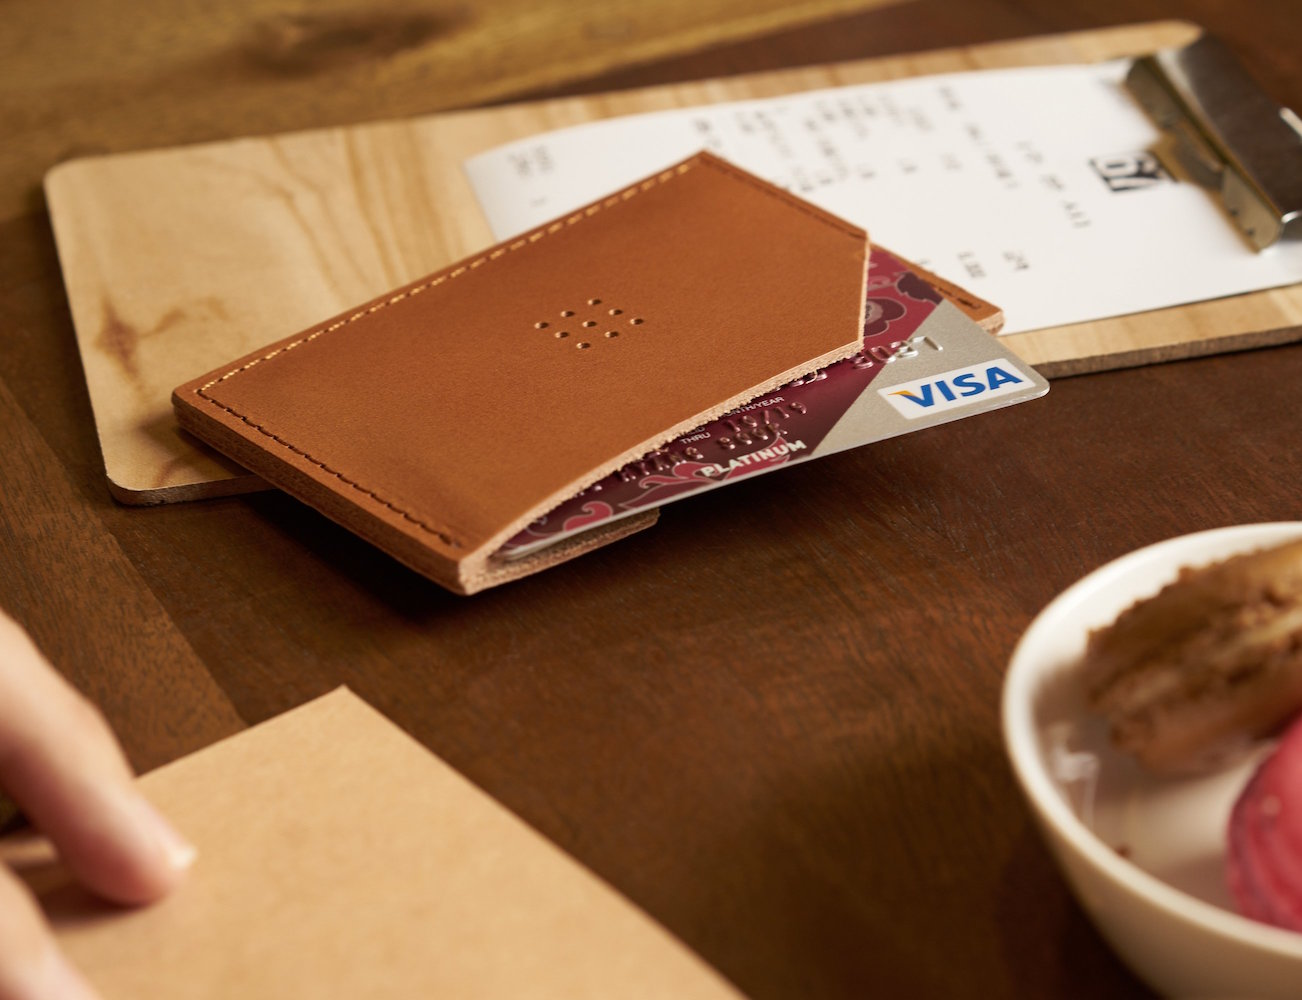 303 Camel Cardholder by Posh Projects